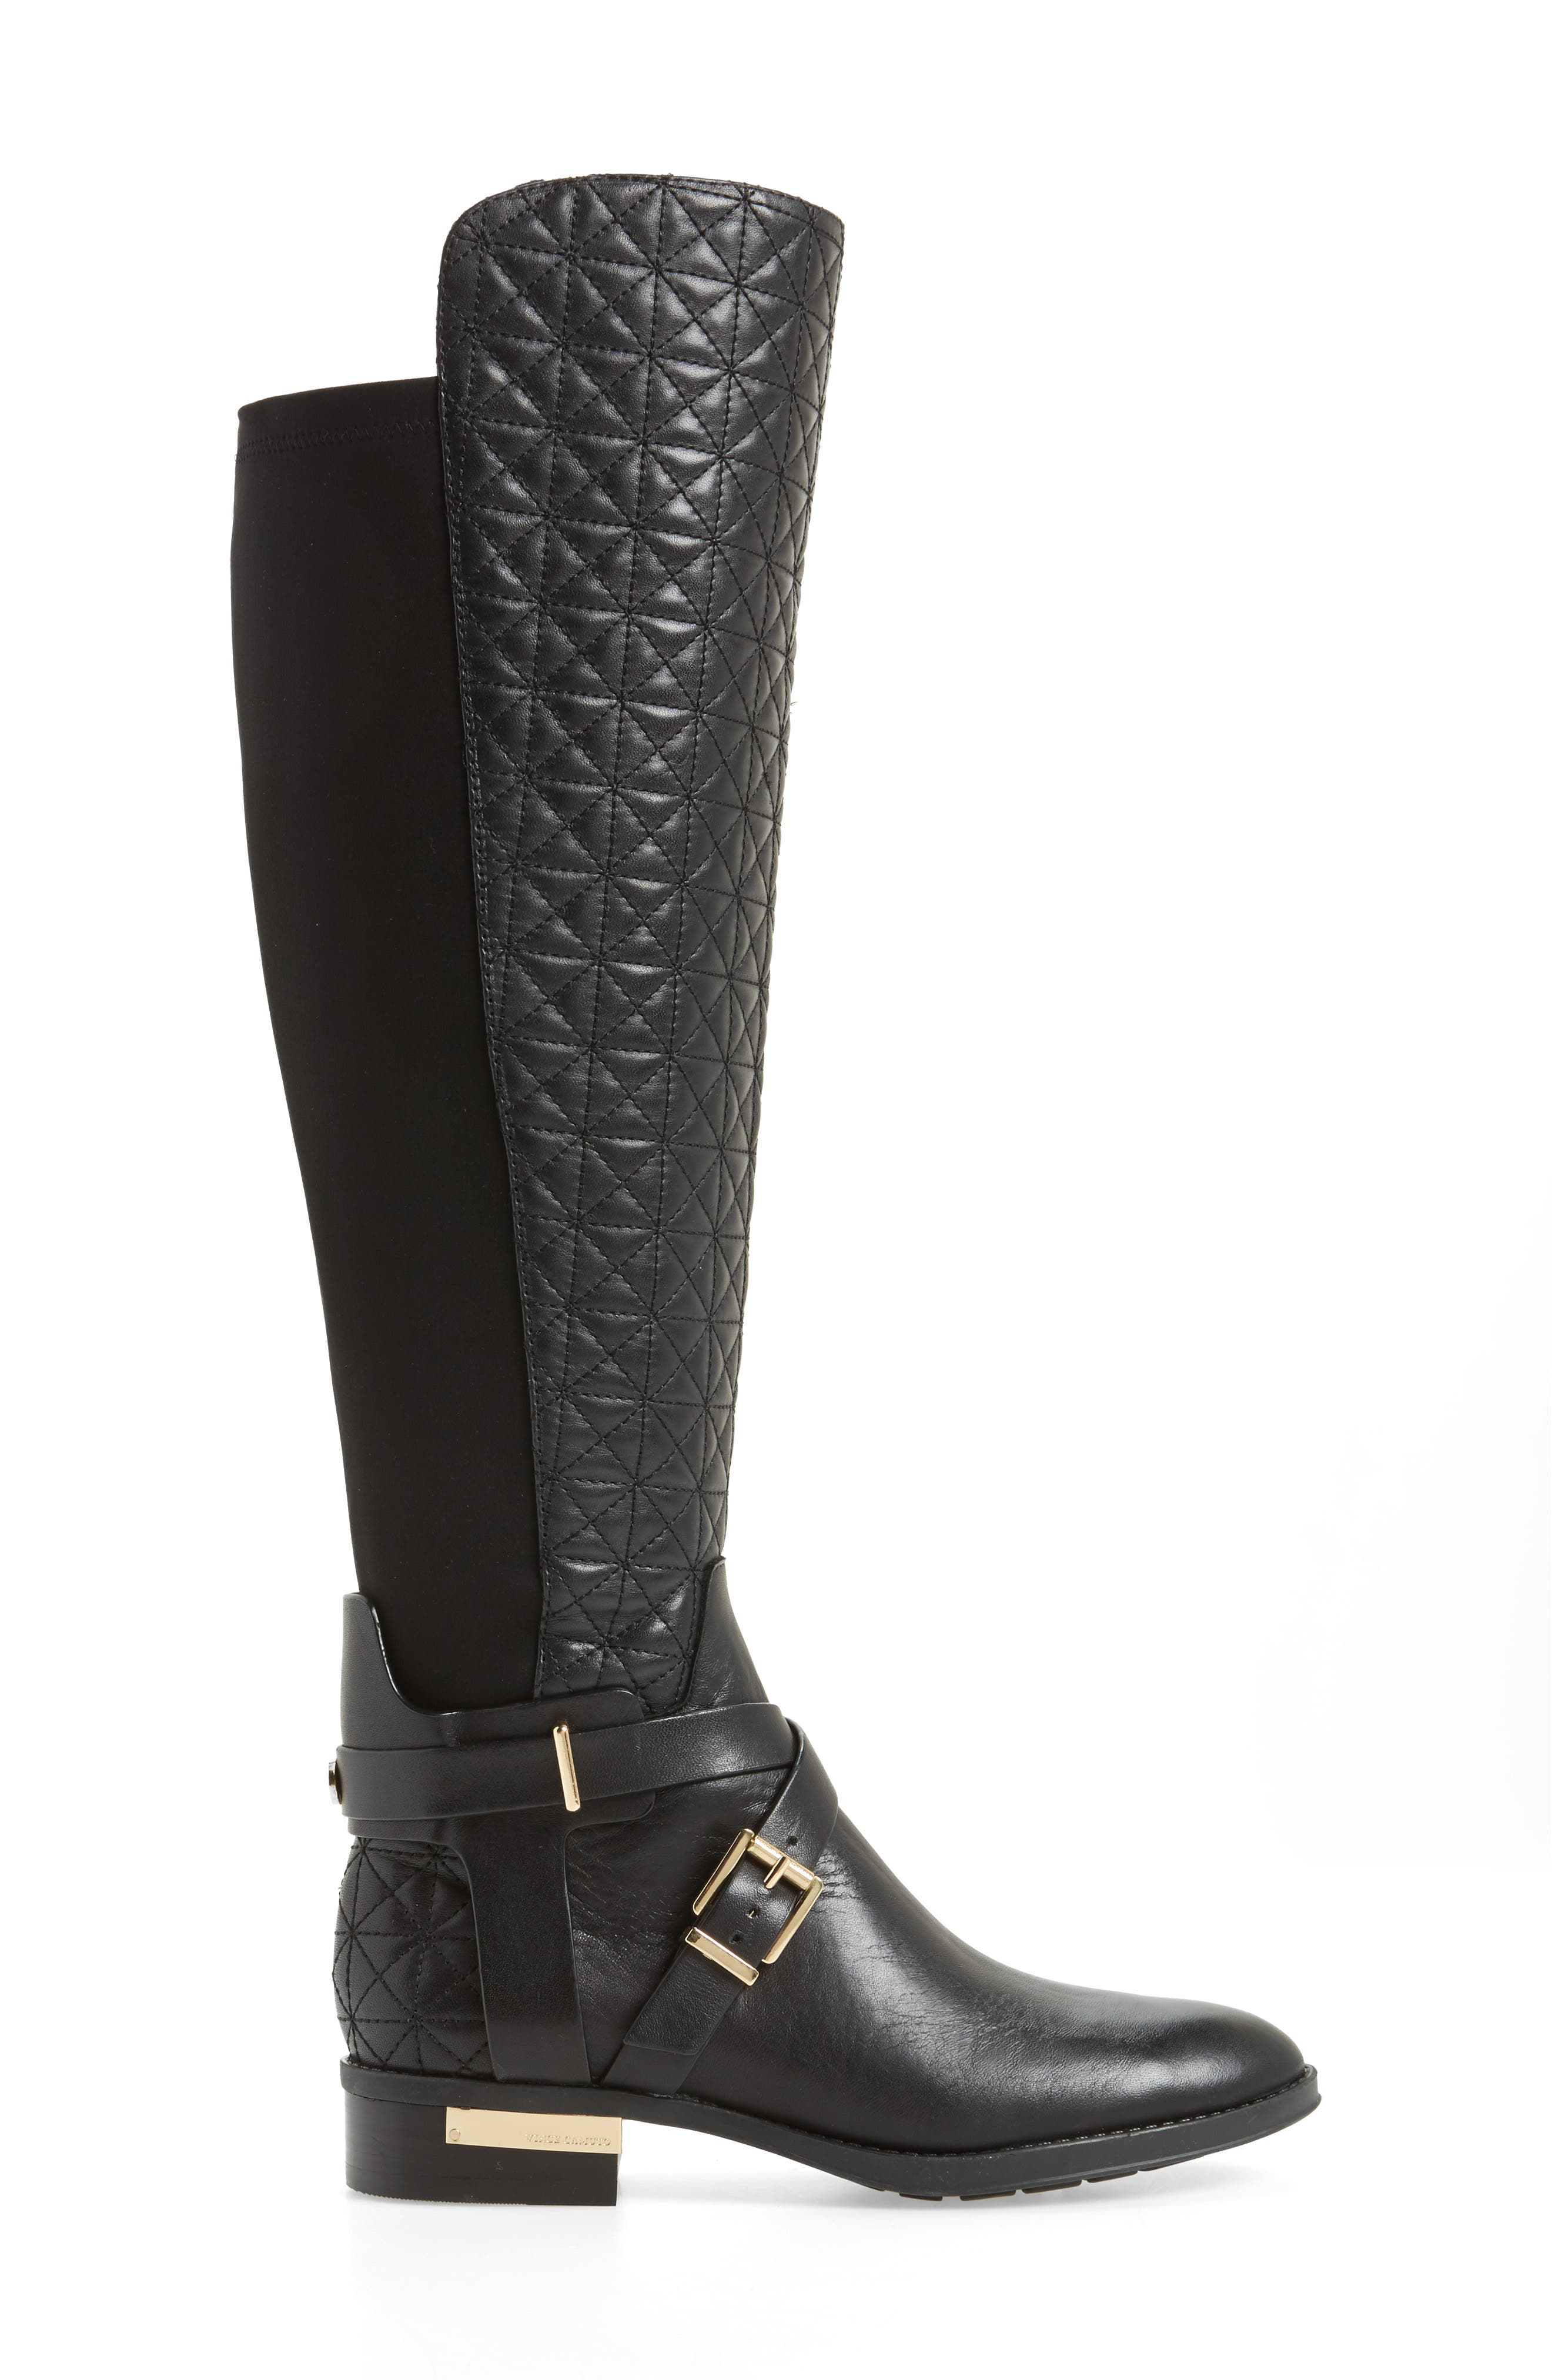 Patira Over the Knee Boot,                             Alternate thumbnail 3, color,                             Black Leather Wide Calf